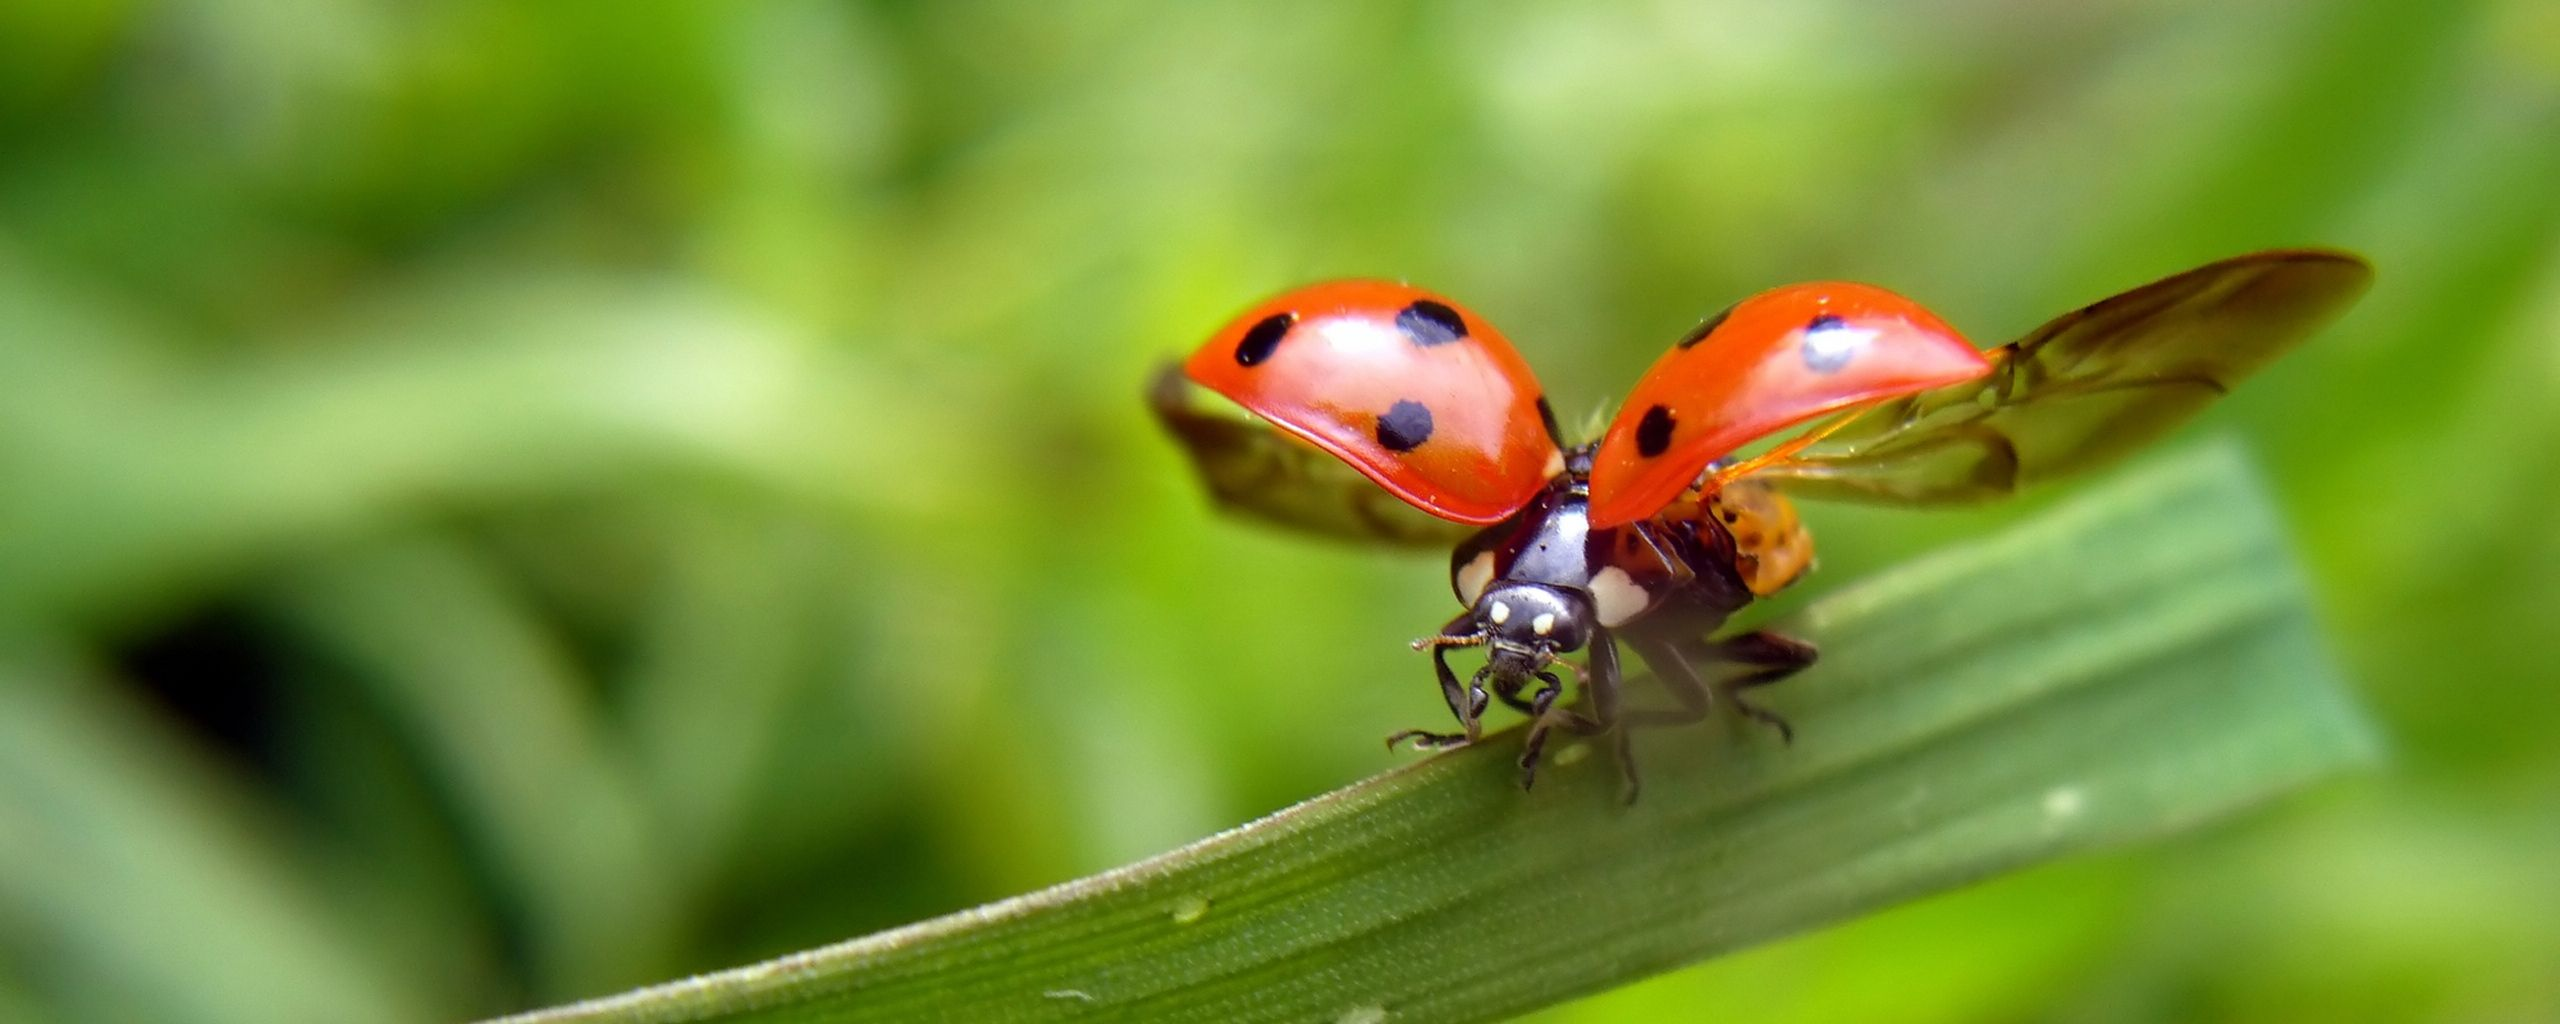 2560x1024 wallpaper ladybug, leaves, grass, flying, wings